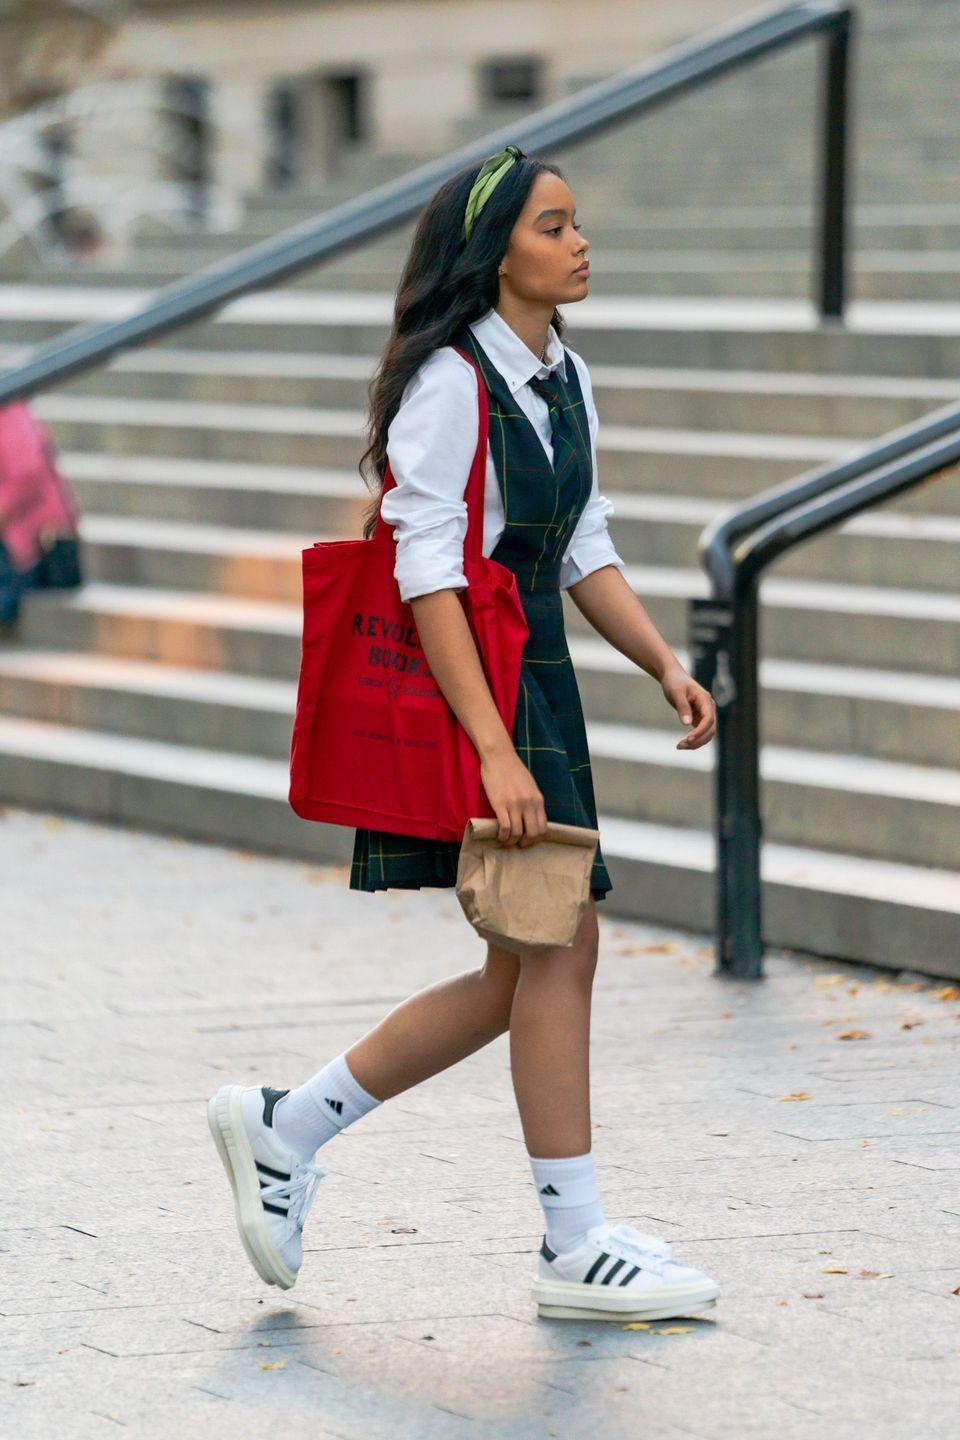 <p>Whitney Peak carries a red tote bag and packed lunch. </p>